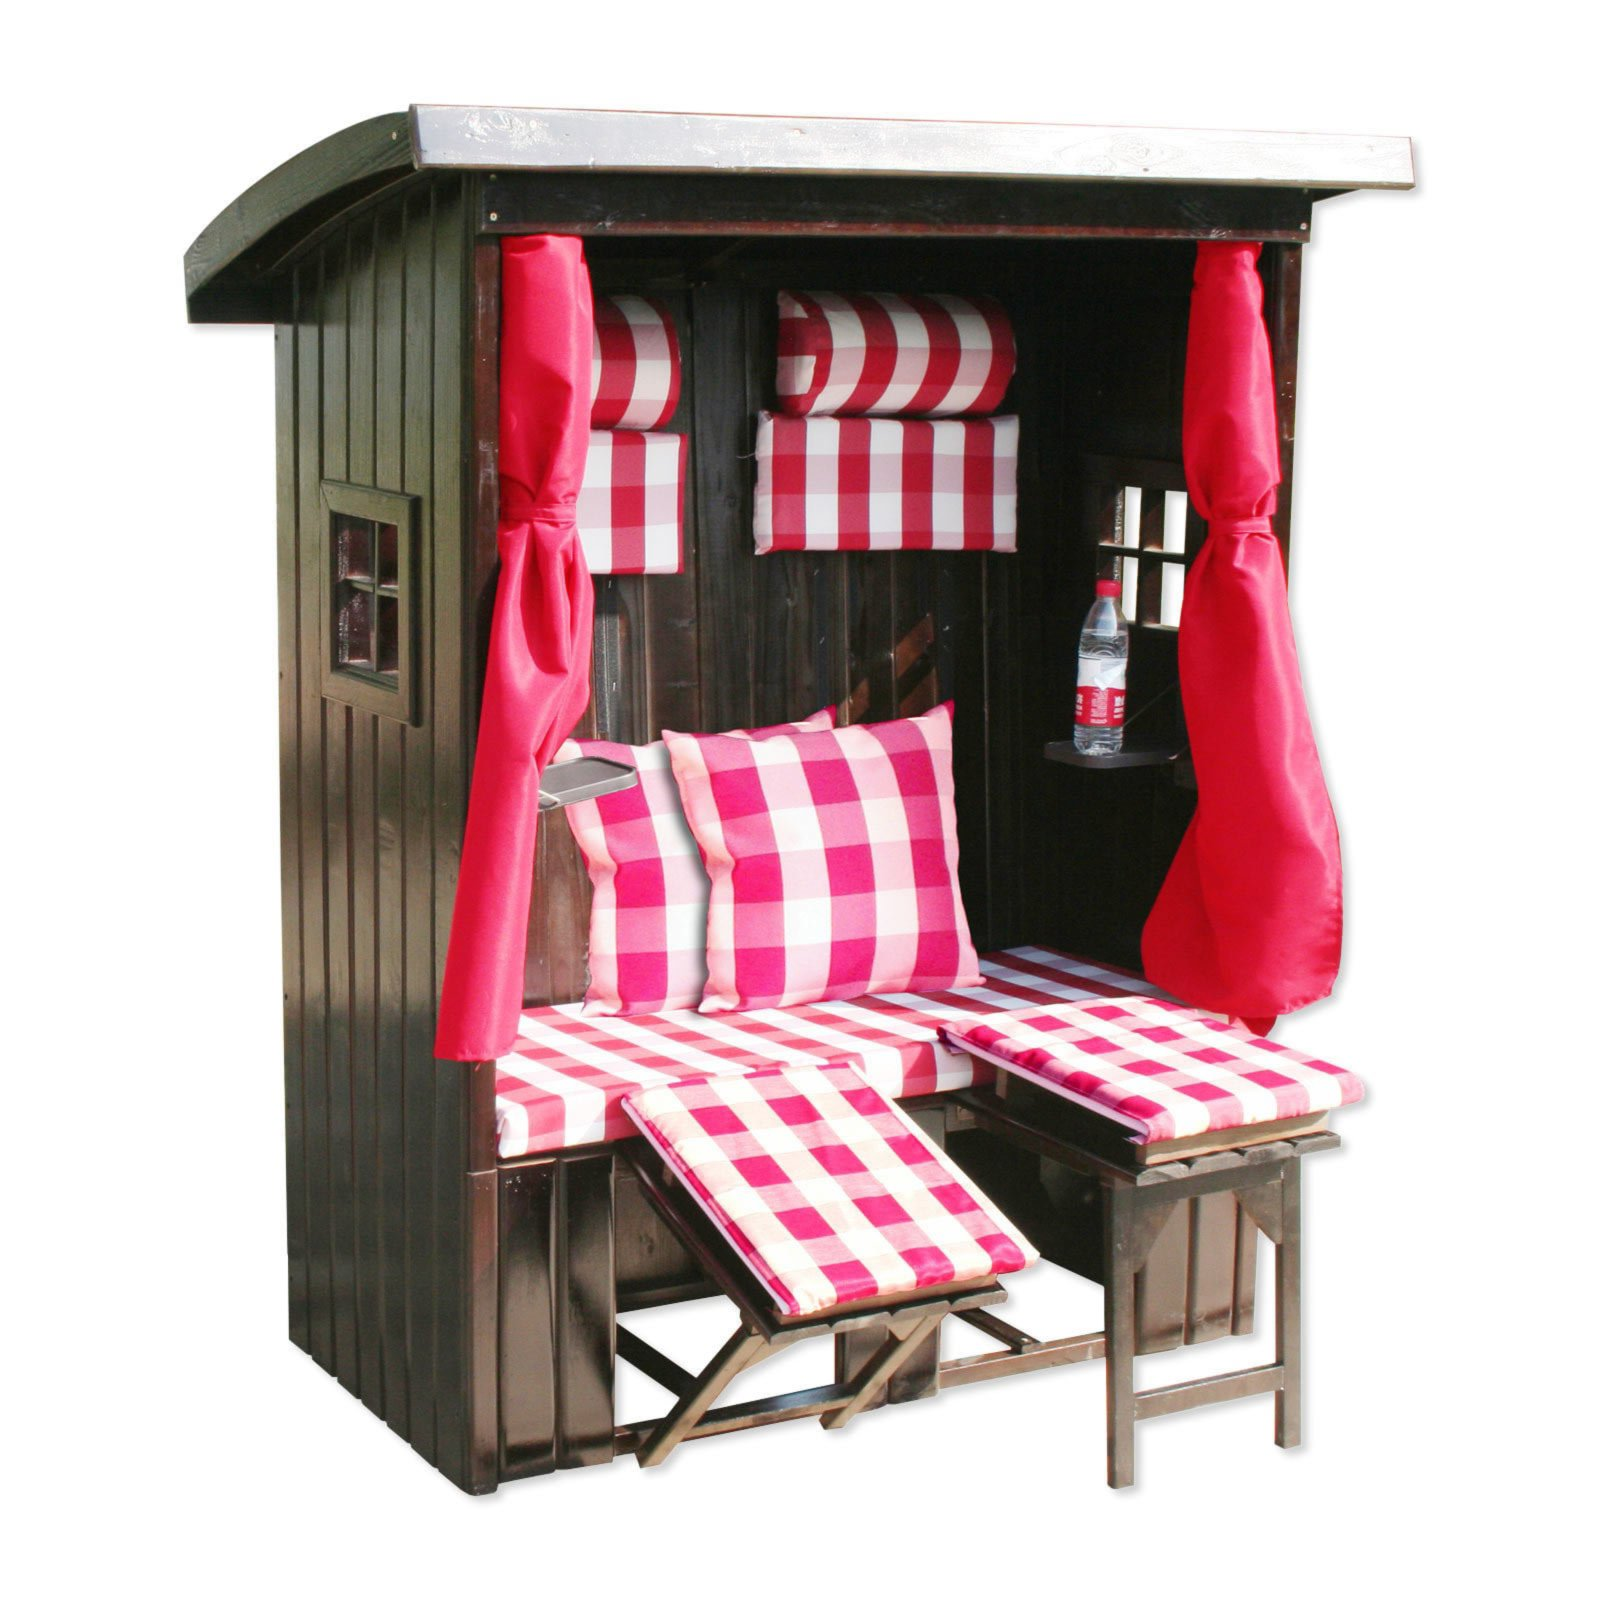 strandkorb kitzb hl pink wei massiv 143x169 cm. Black Bedroom Furniture Sets. Home Design Ideas